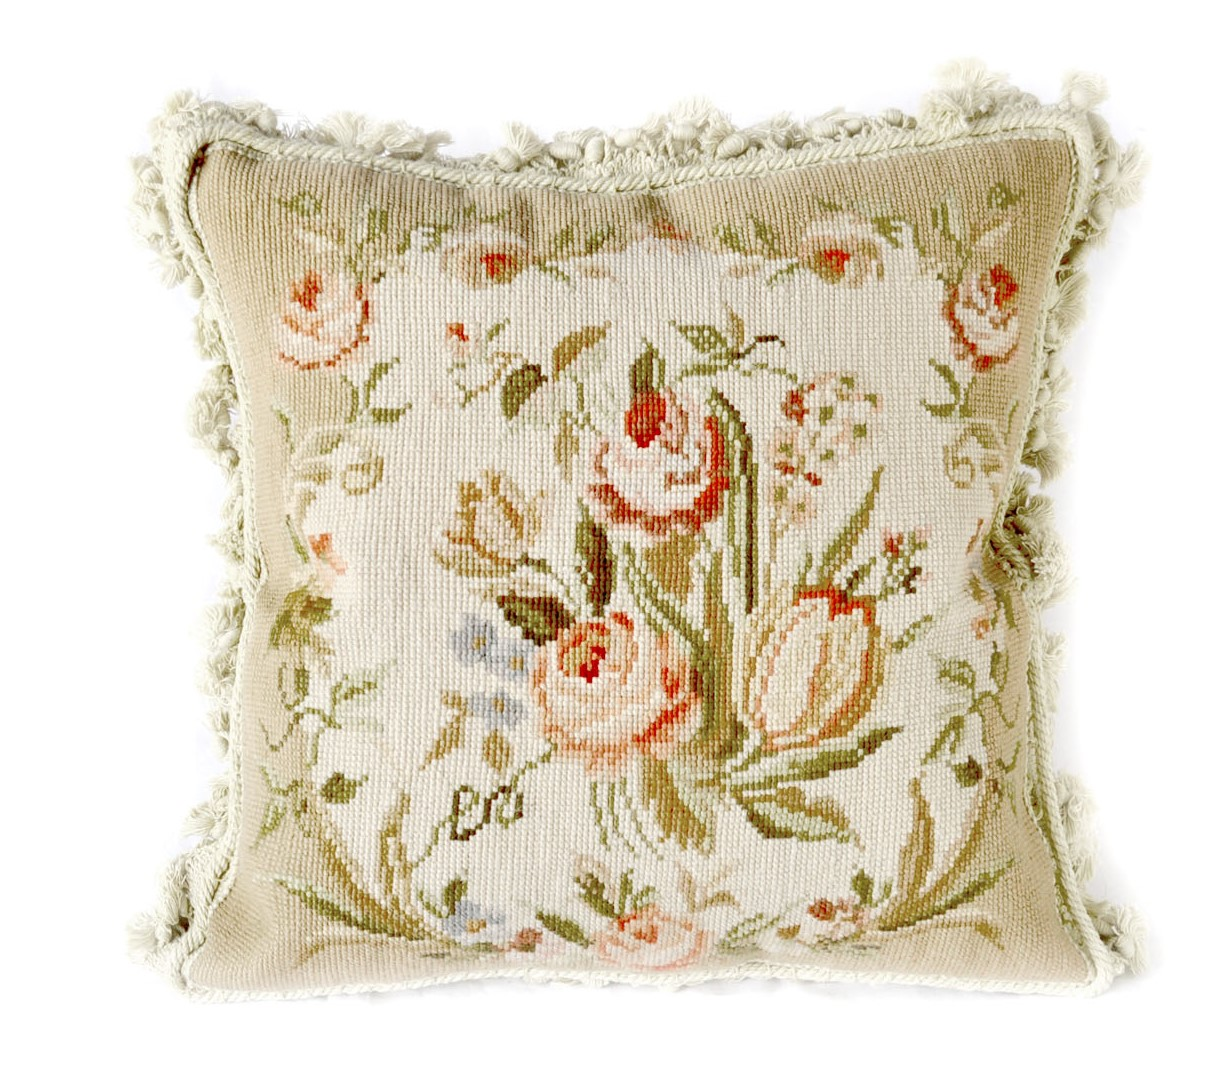 16″ x 16″ Handmade Wool Needlepoint Floral Rose Bouquet Cushion Cover Pillow Case 12980104